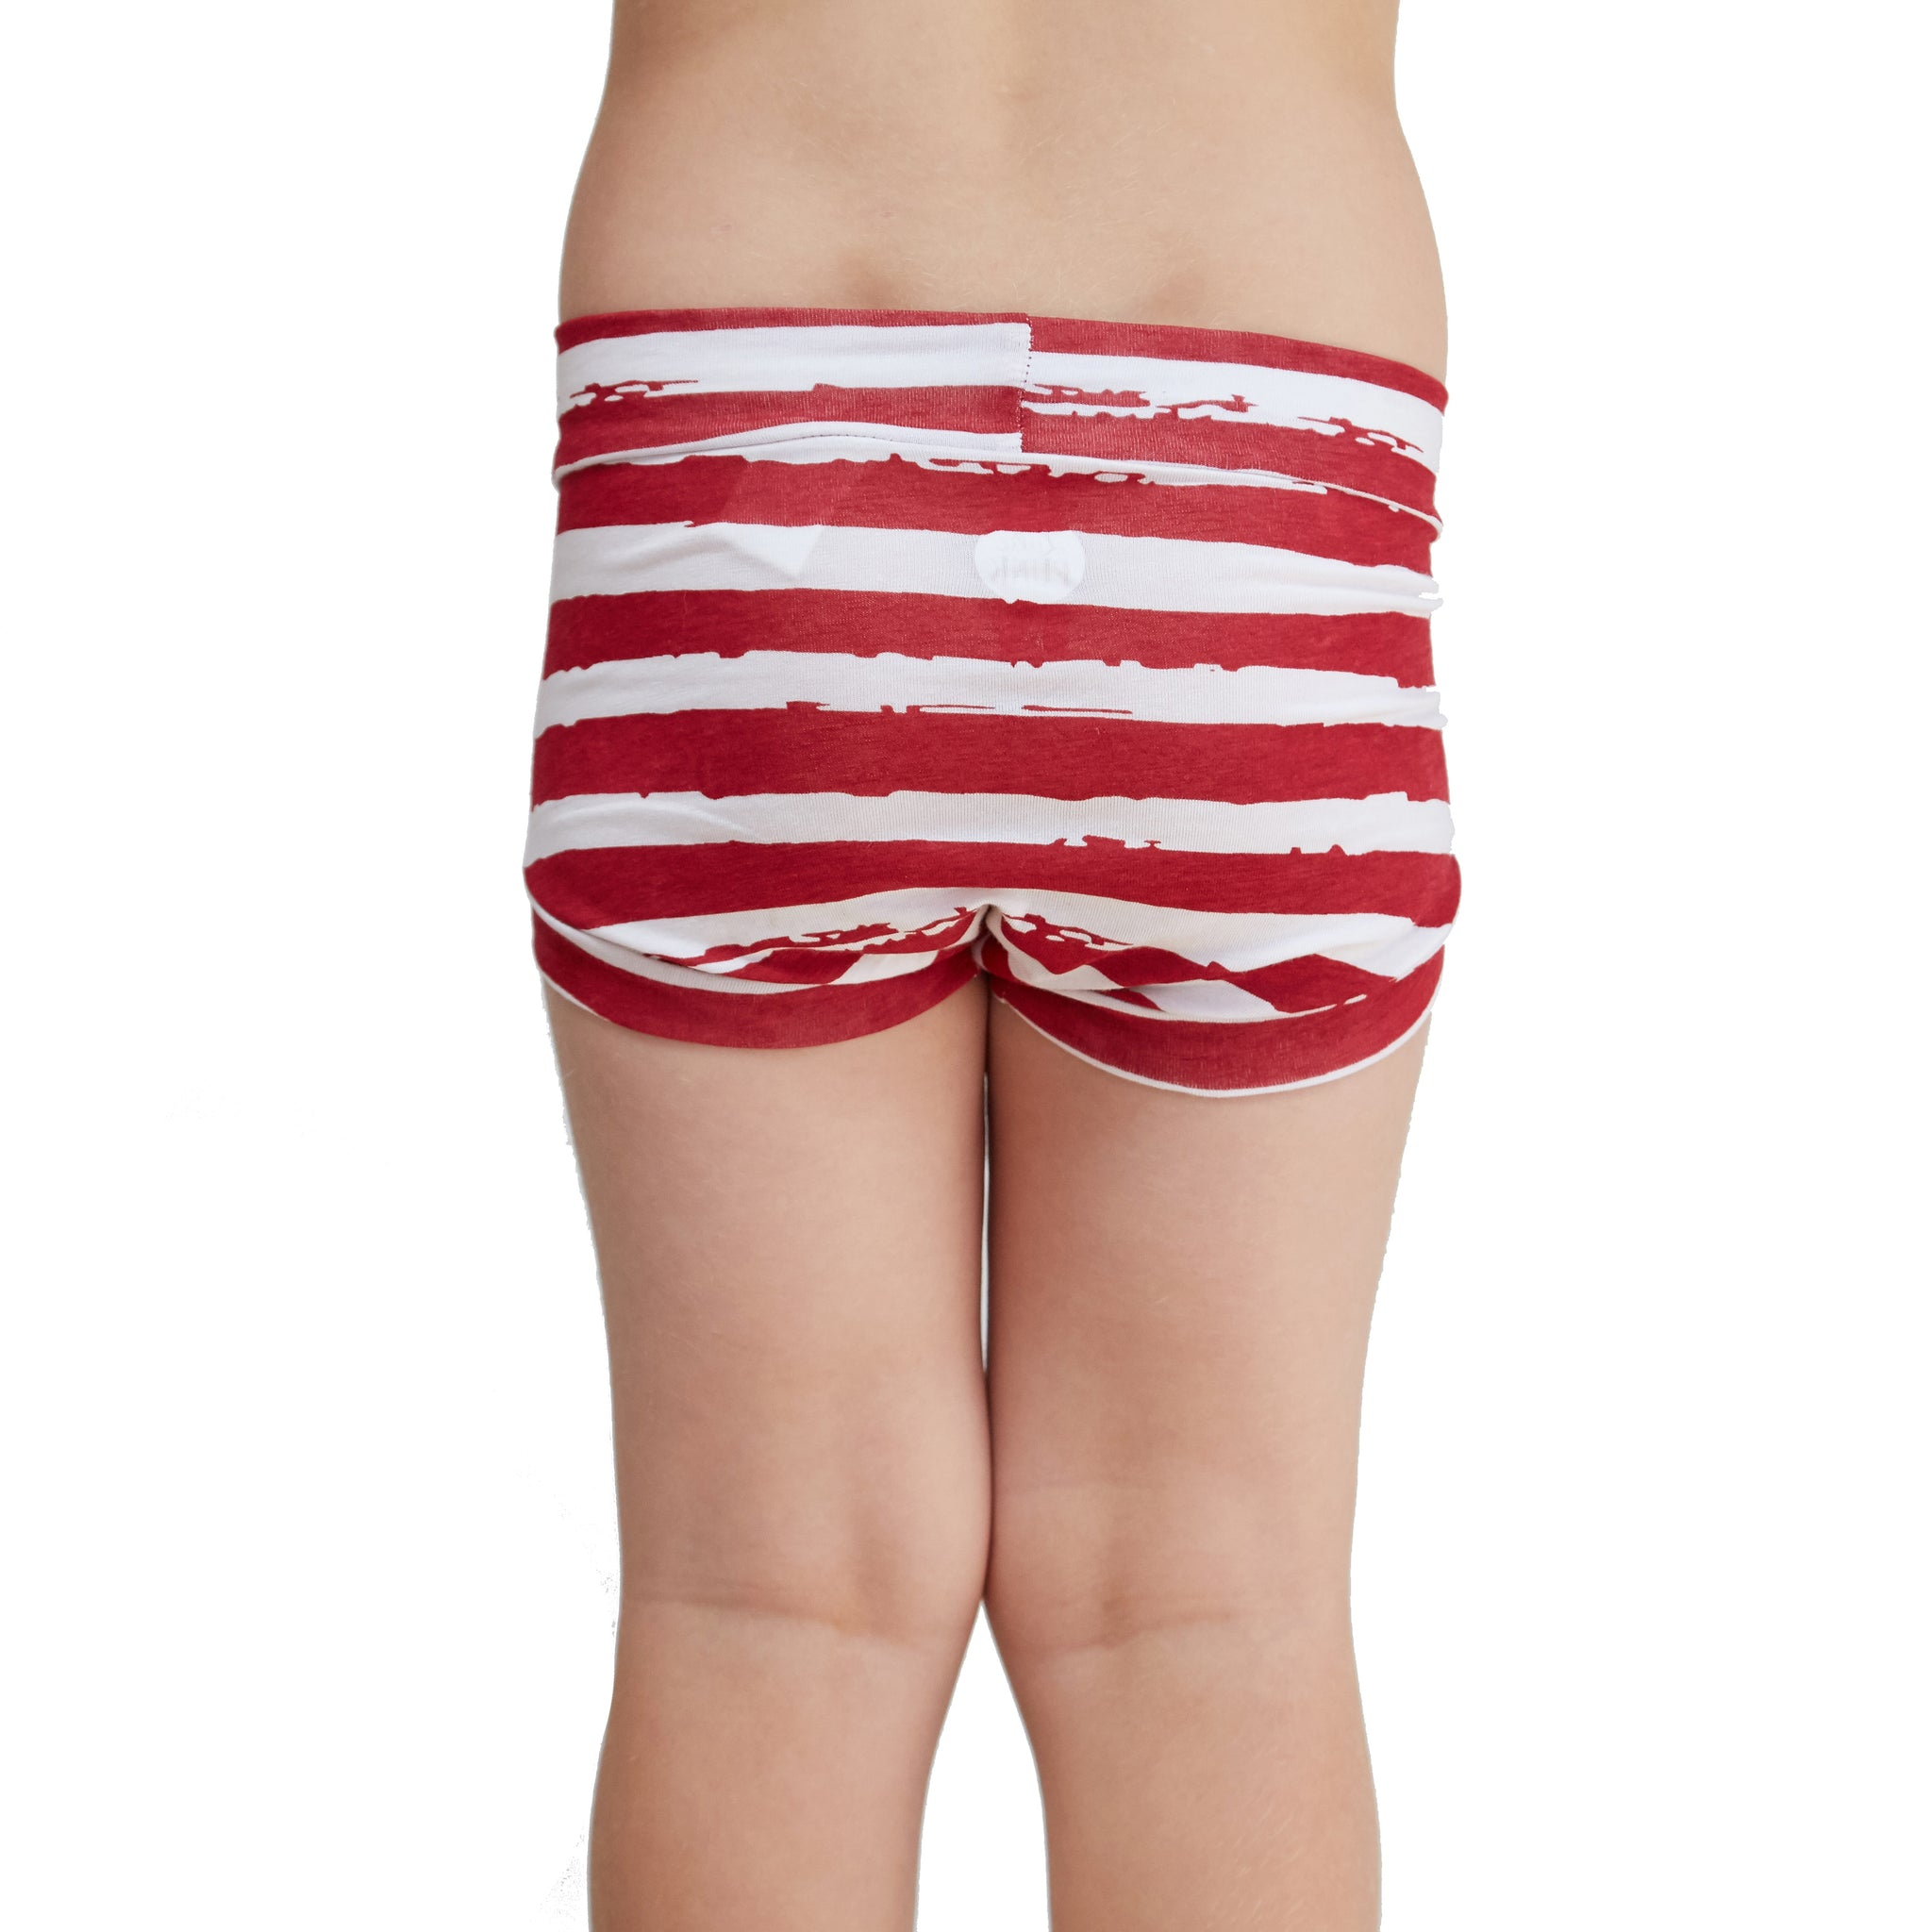 Bamboo & Organic Cotton Kids Underwear Y-front - Distressed Stripe